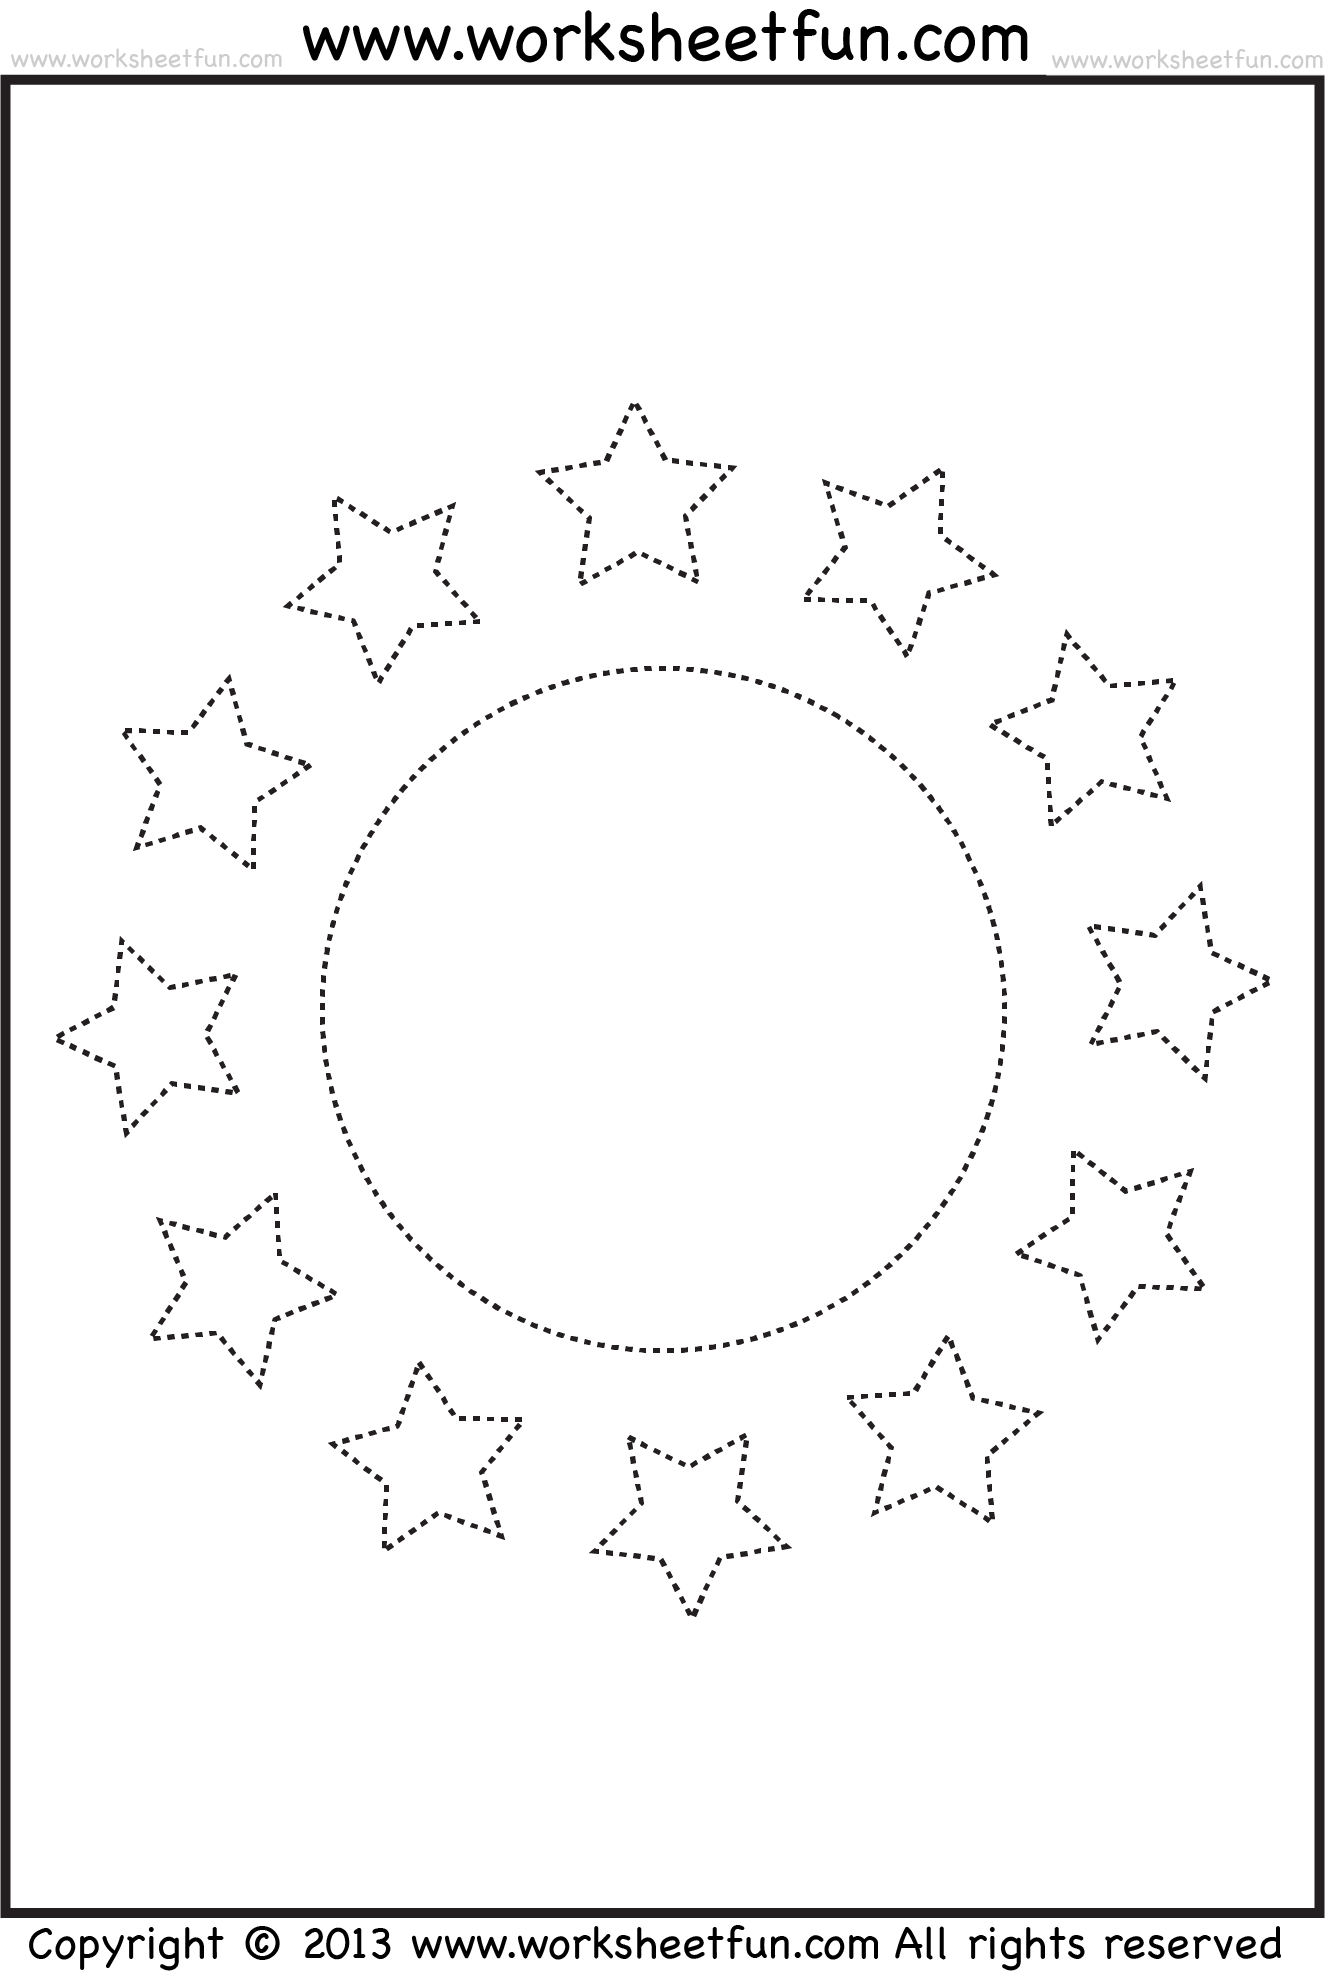 worksheet Star Worksheets For Preschoolers shape tracing pdf sun moon stars httpwww worksheetfun com preschool worksheets kindergarten worksheet circle and worksheet